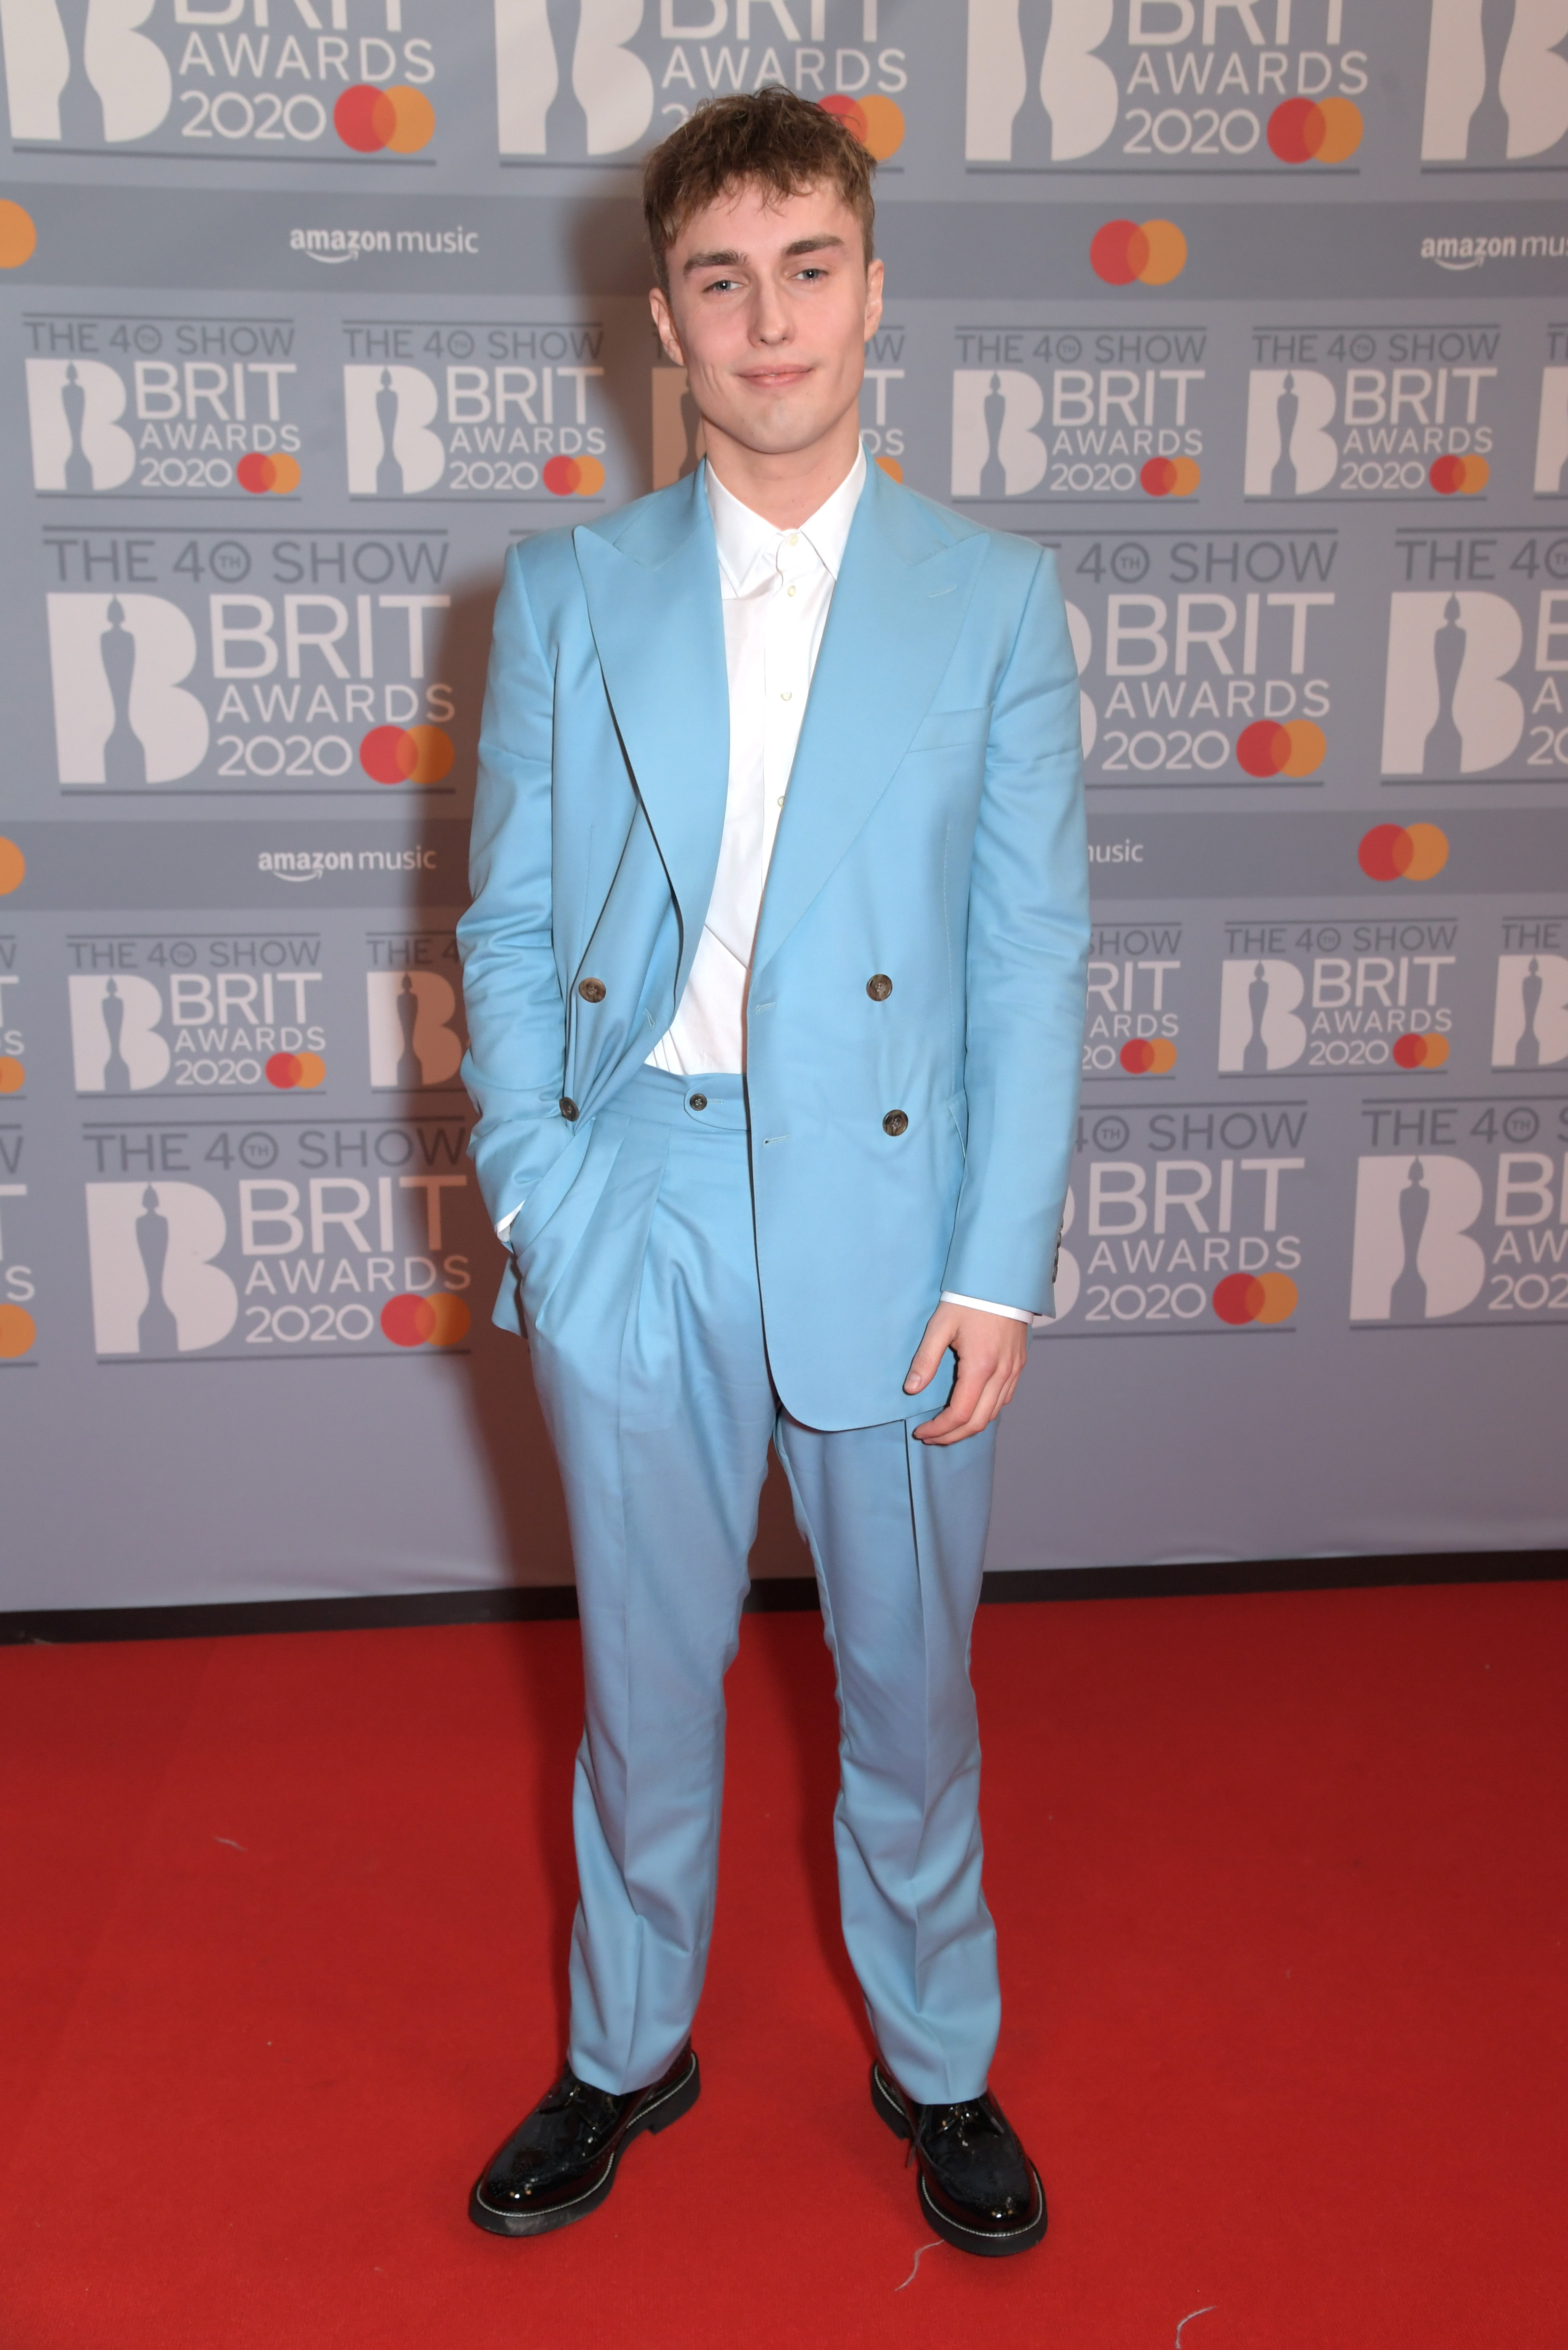 Sam Fender attends The BRIT Awards 2020 at The O2 Arena on February 18, 2020 in London, England.  (Photo by David M. Benett/Dave Benett/Getty Images)